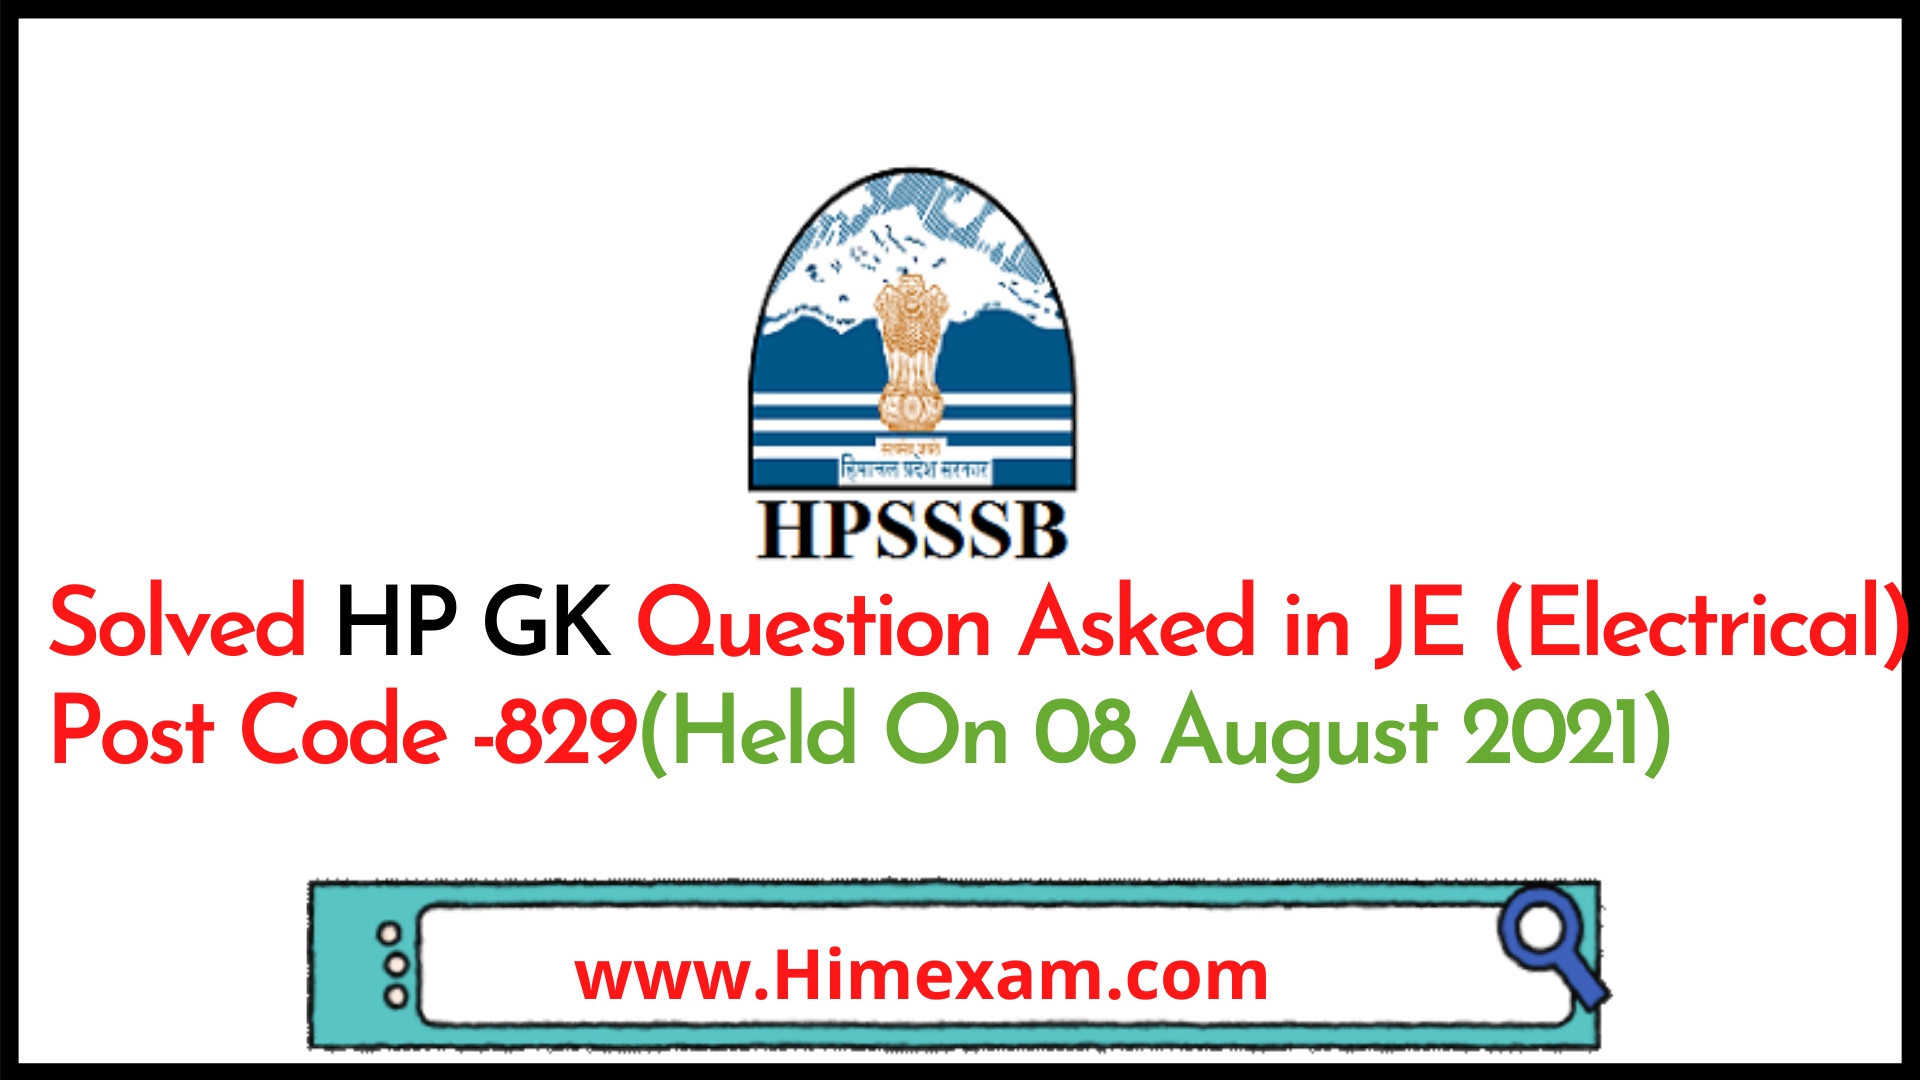 Solved HP GK Question Asked in JE  (Electrical) Post Code -829